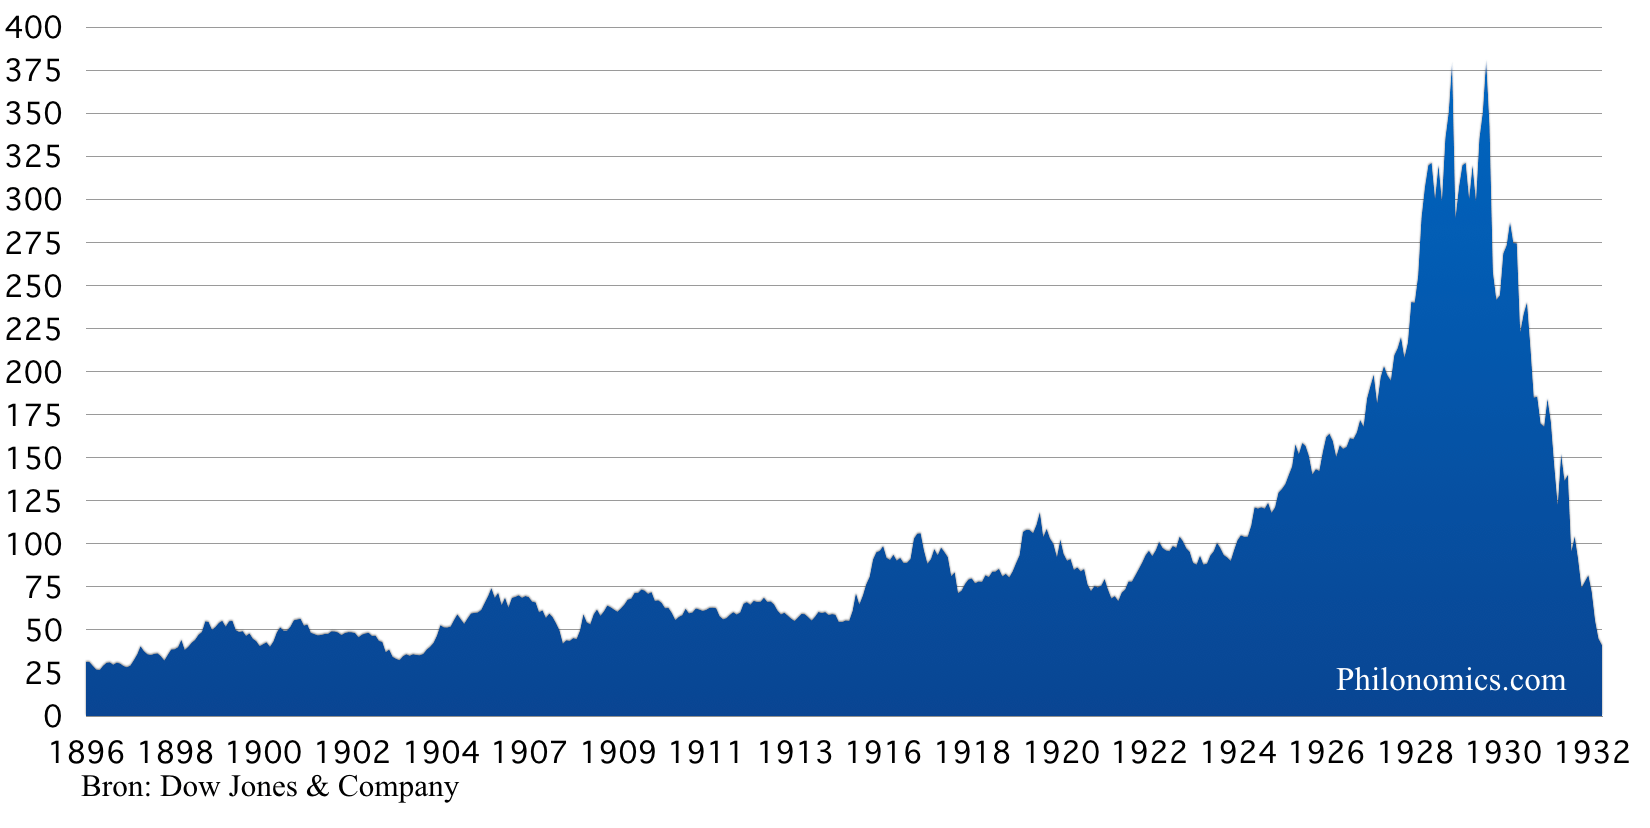 [7] Dow Jones Industrial Average Index 1896-1932